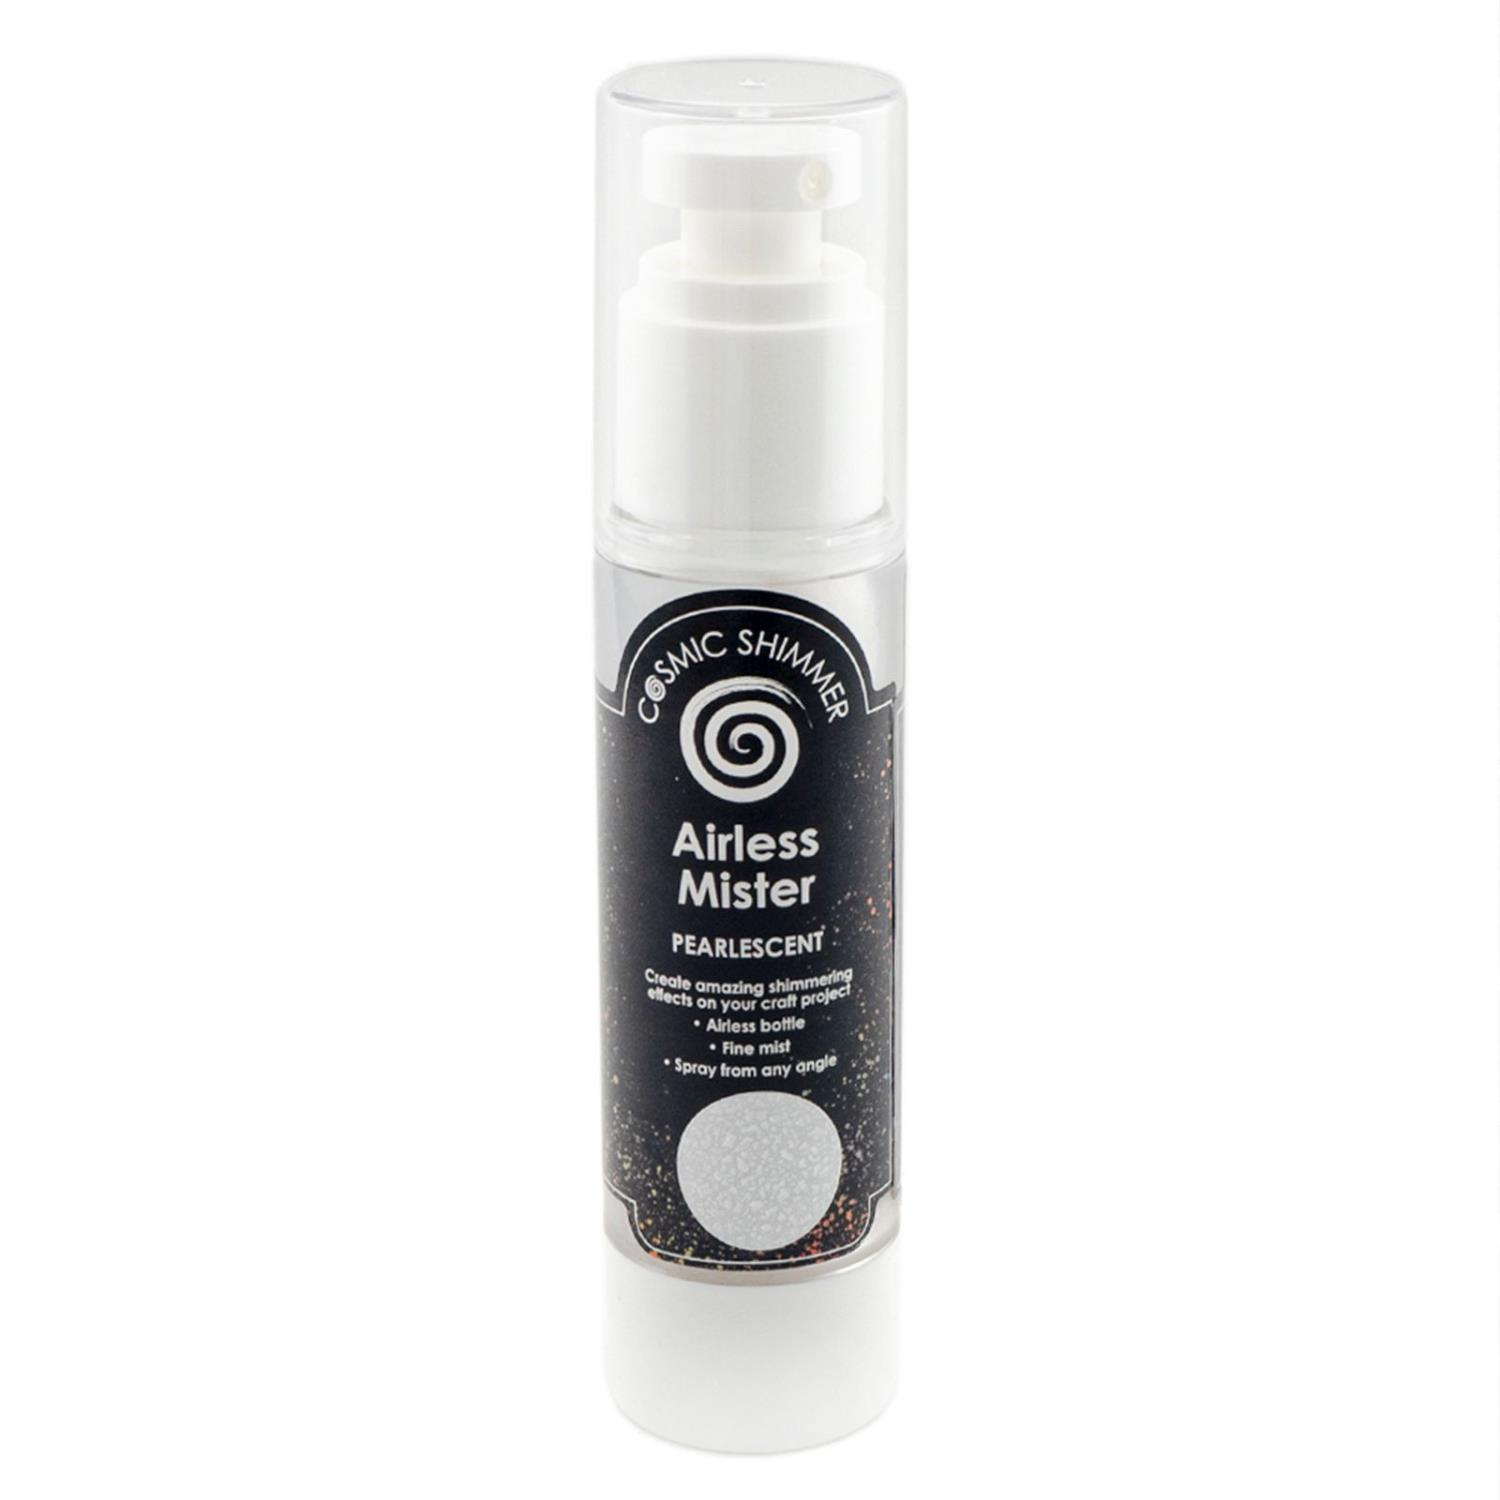 Cosmic shimmer pearlescent airless misters pearl whisper 50ml